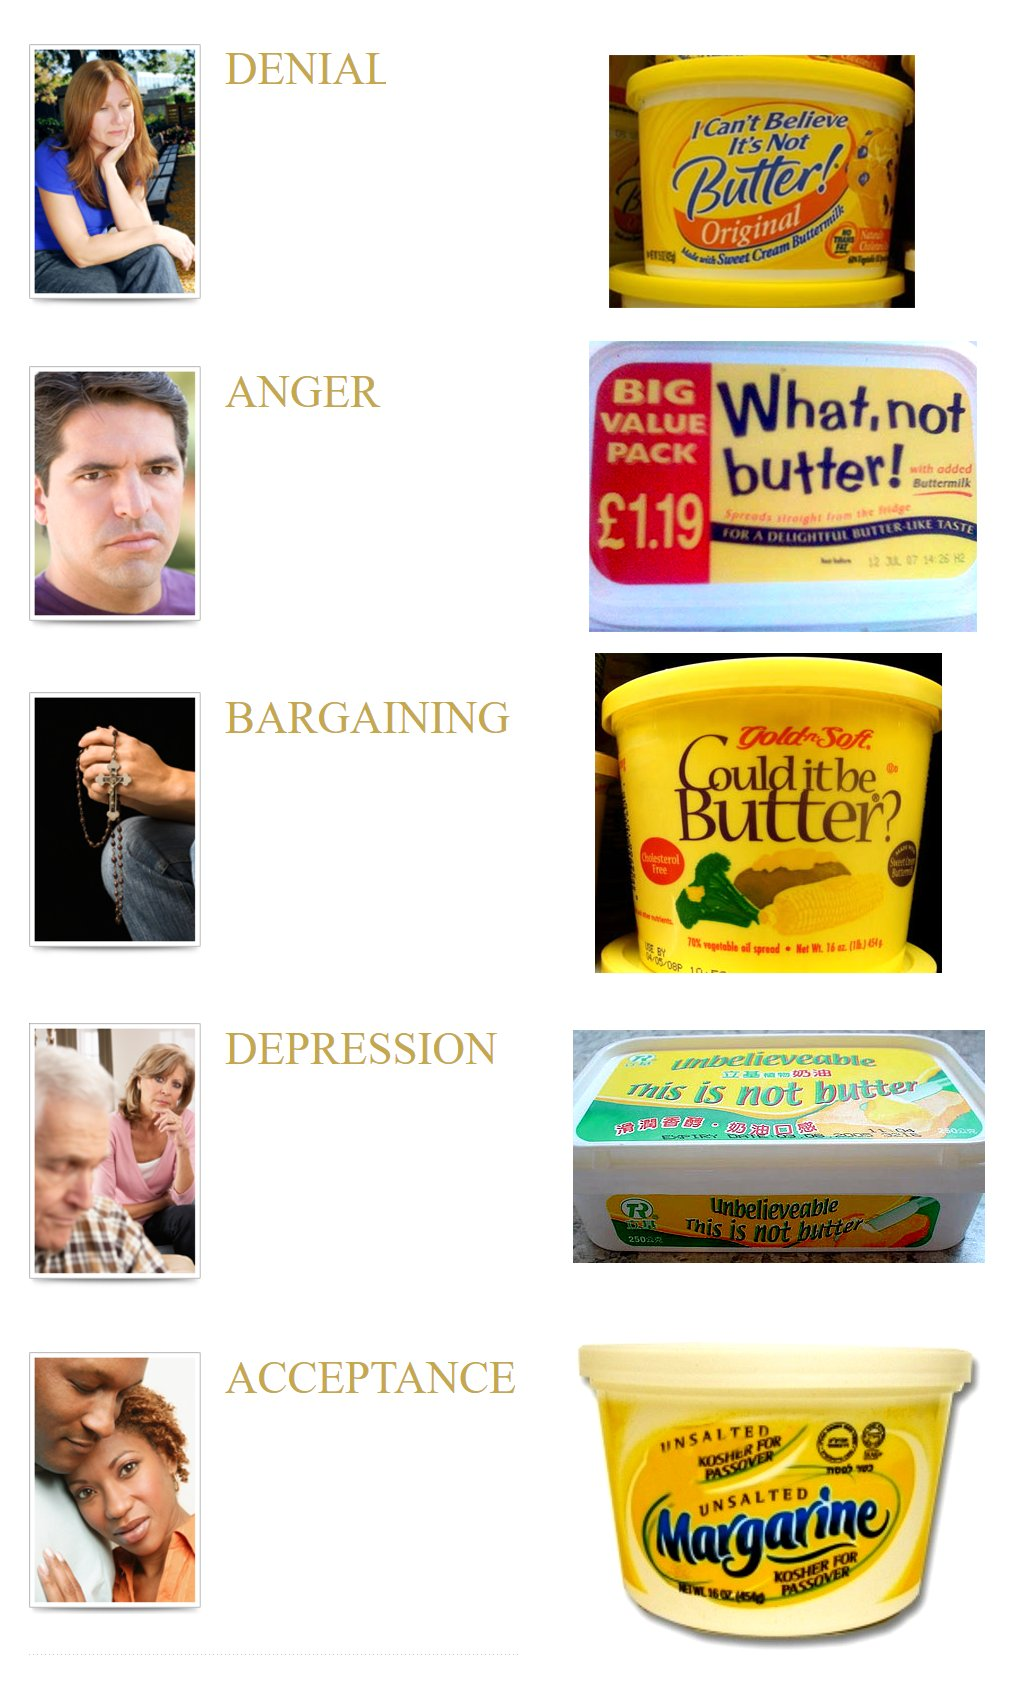 Imitation Butter | The Five Stages of Grief | Know Your Meme